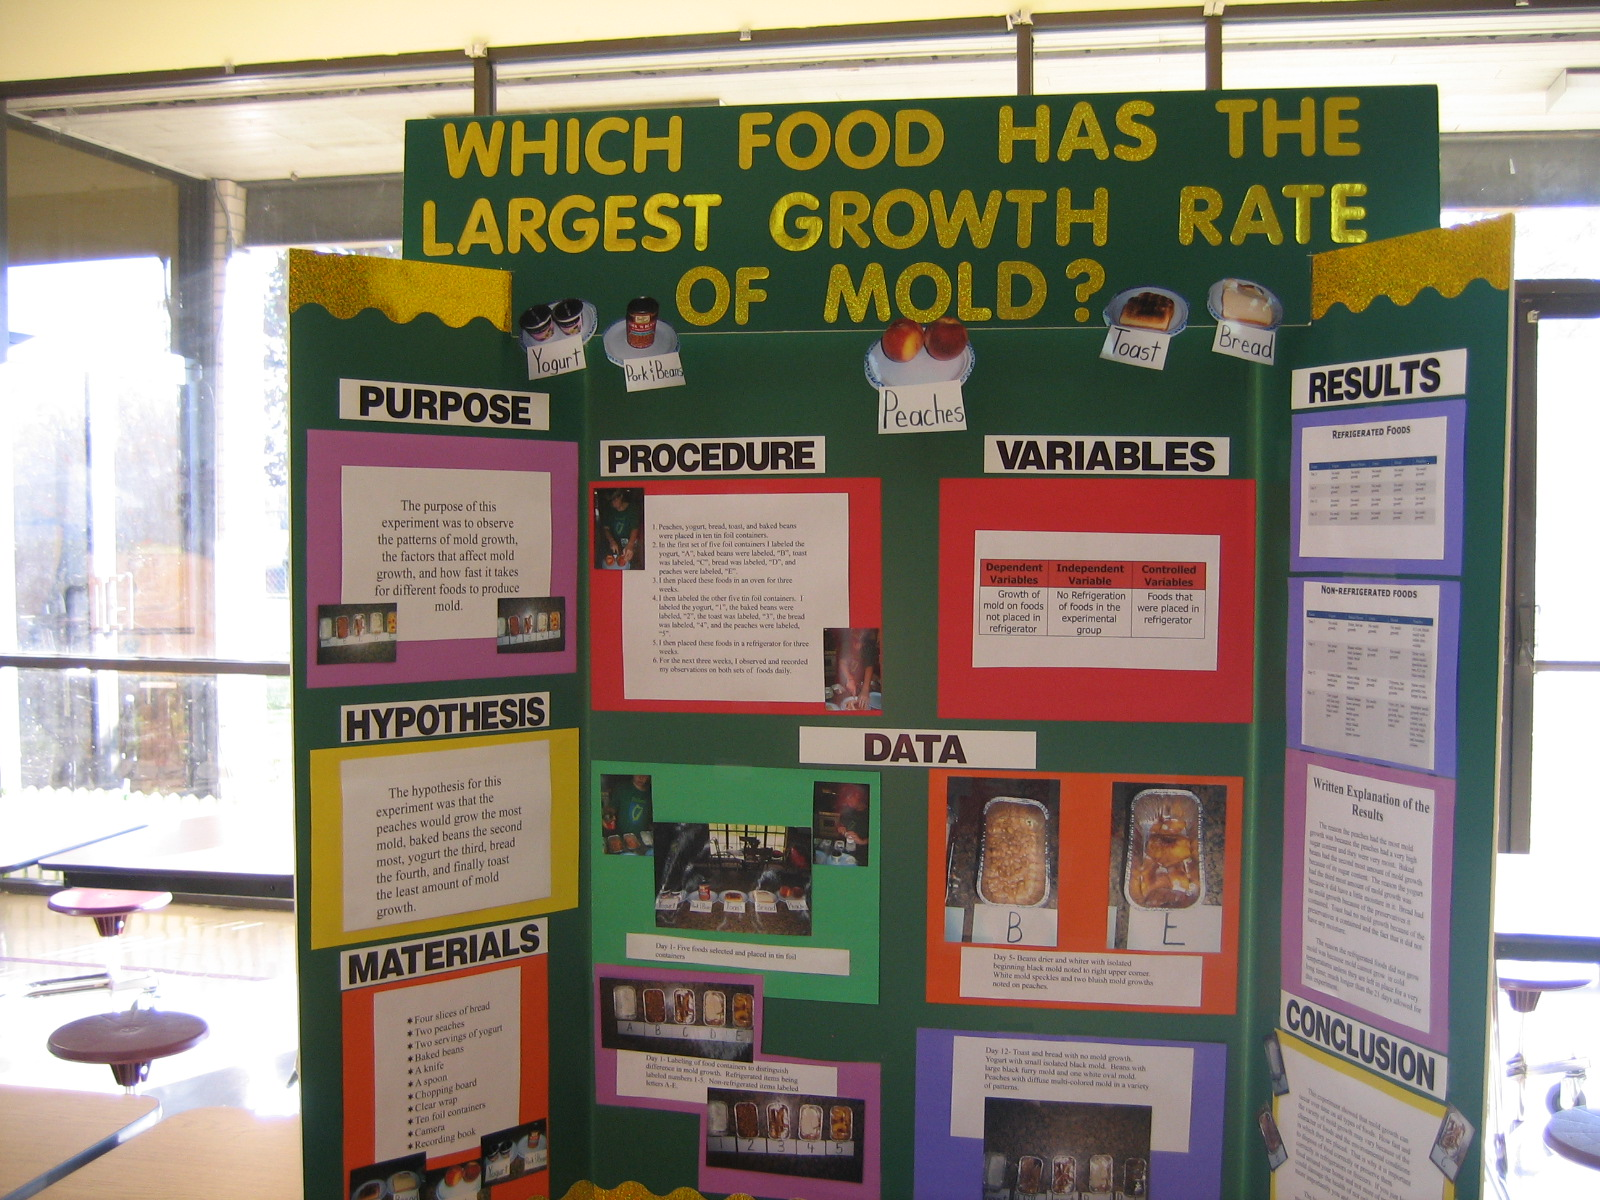 Which Food Has The Largest Growth Rate Of Mold?